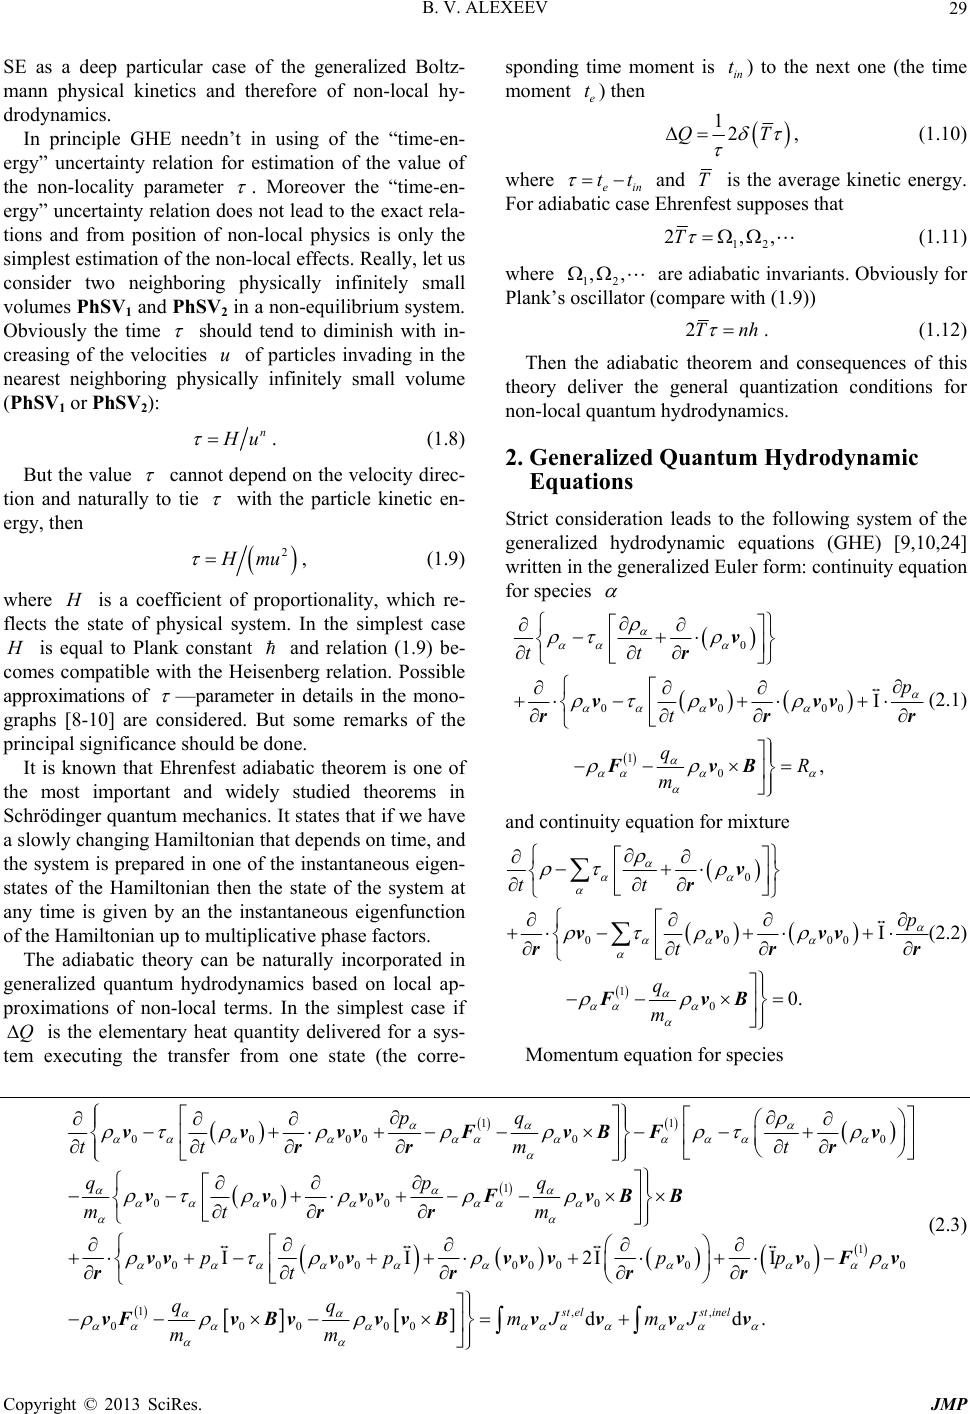 Application of the Non-Local Physics in the Theory of